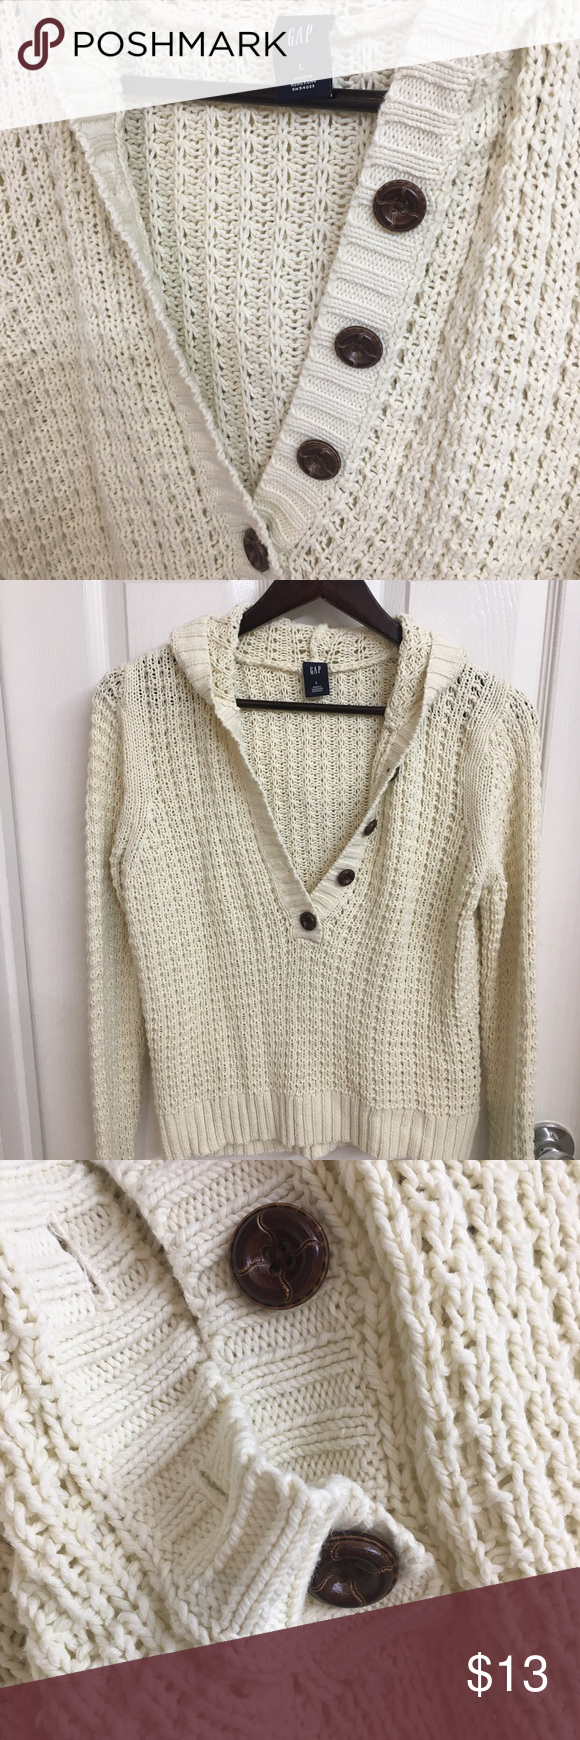 GAP Cream Fisherman Knit Sweater With Hoodie | Cotton, Leather and ...